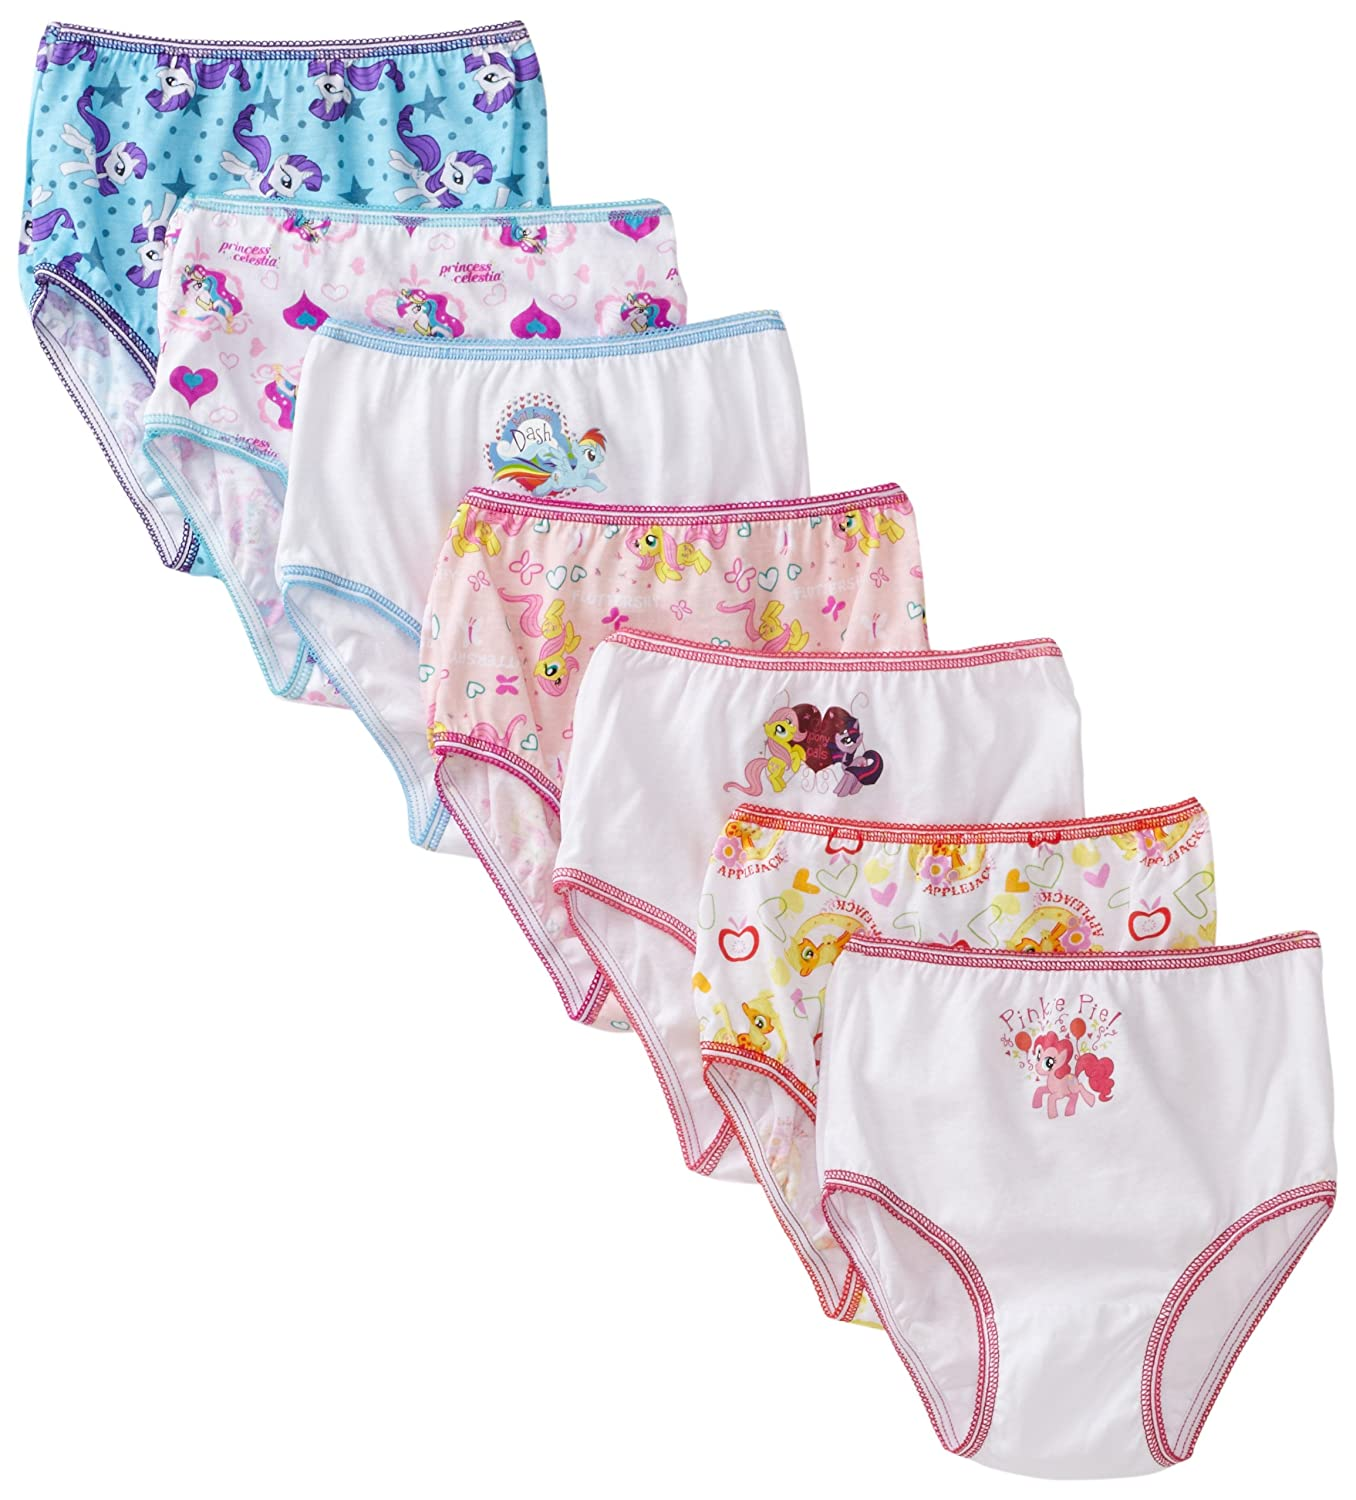 Handcraft Little Girls' My Little Pony Rotating Print Underwear Set (Pack of 7) TGUP8510